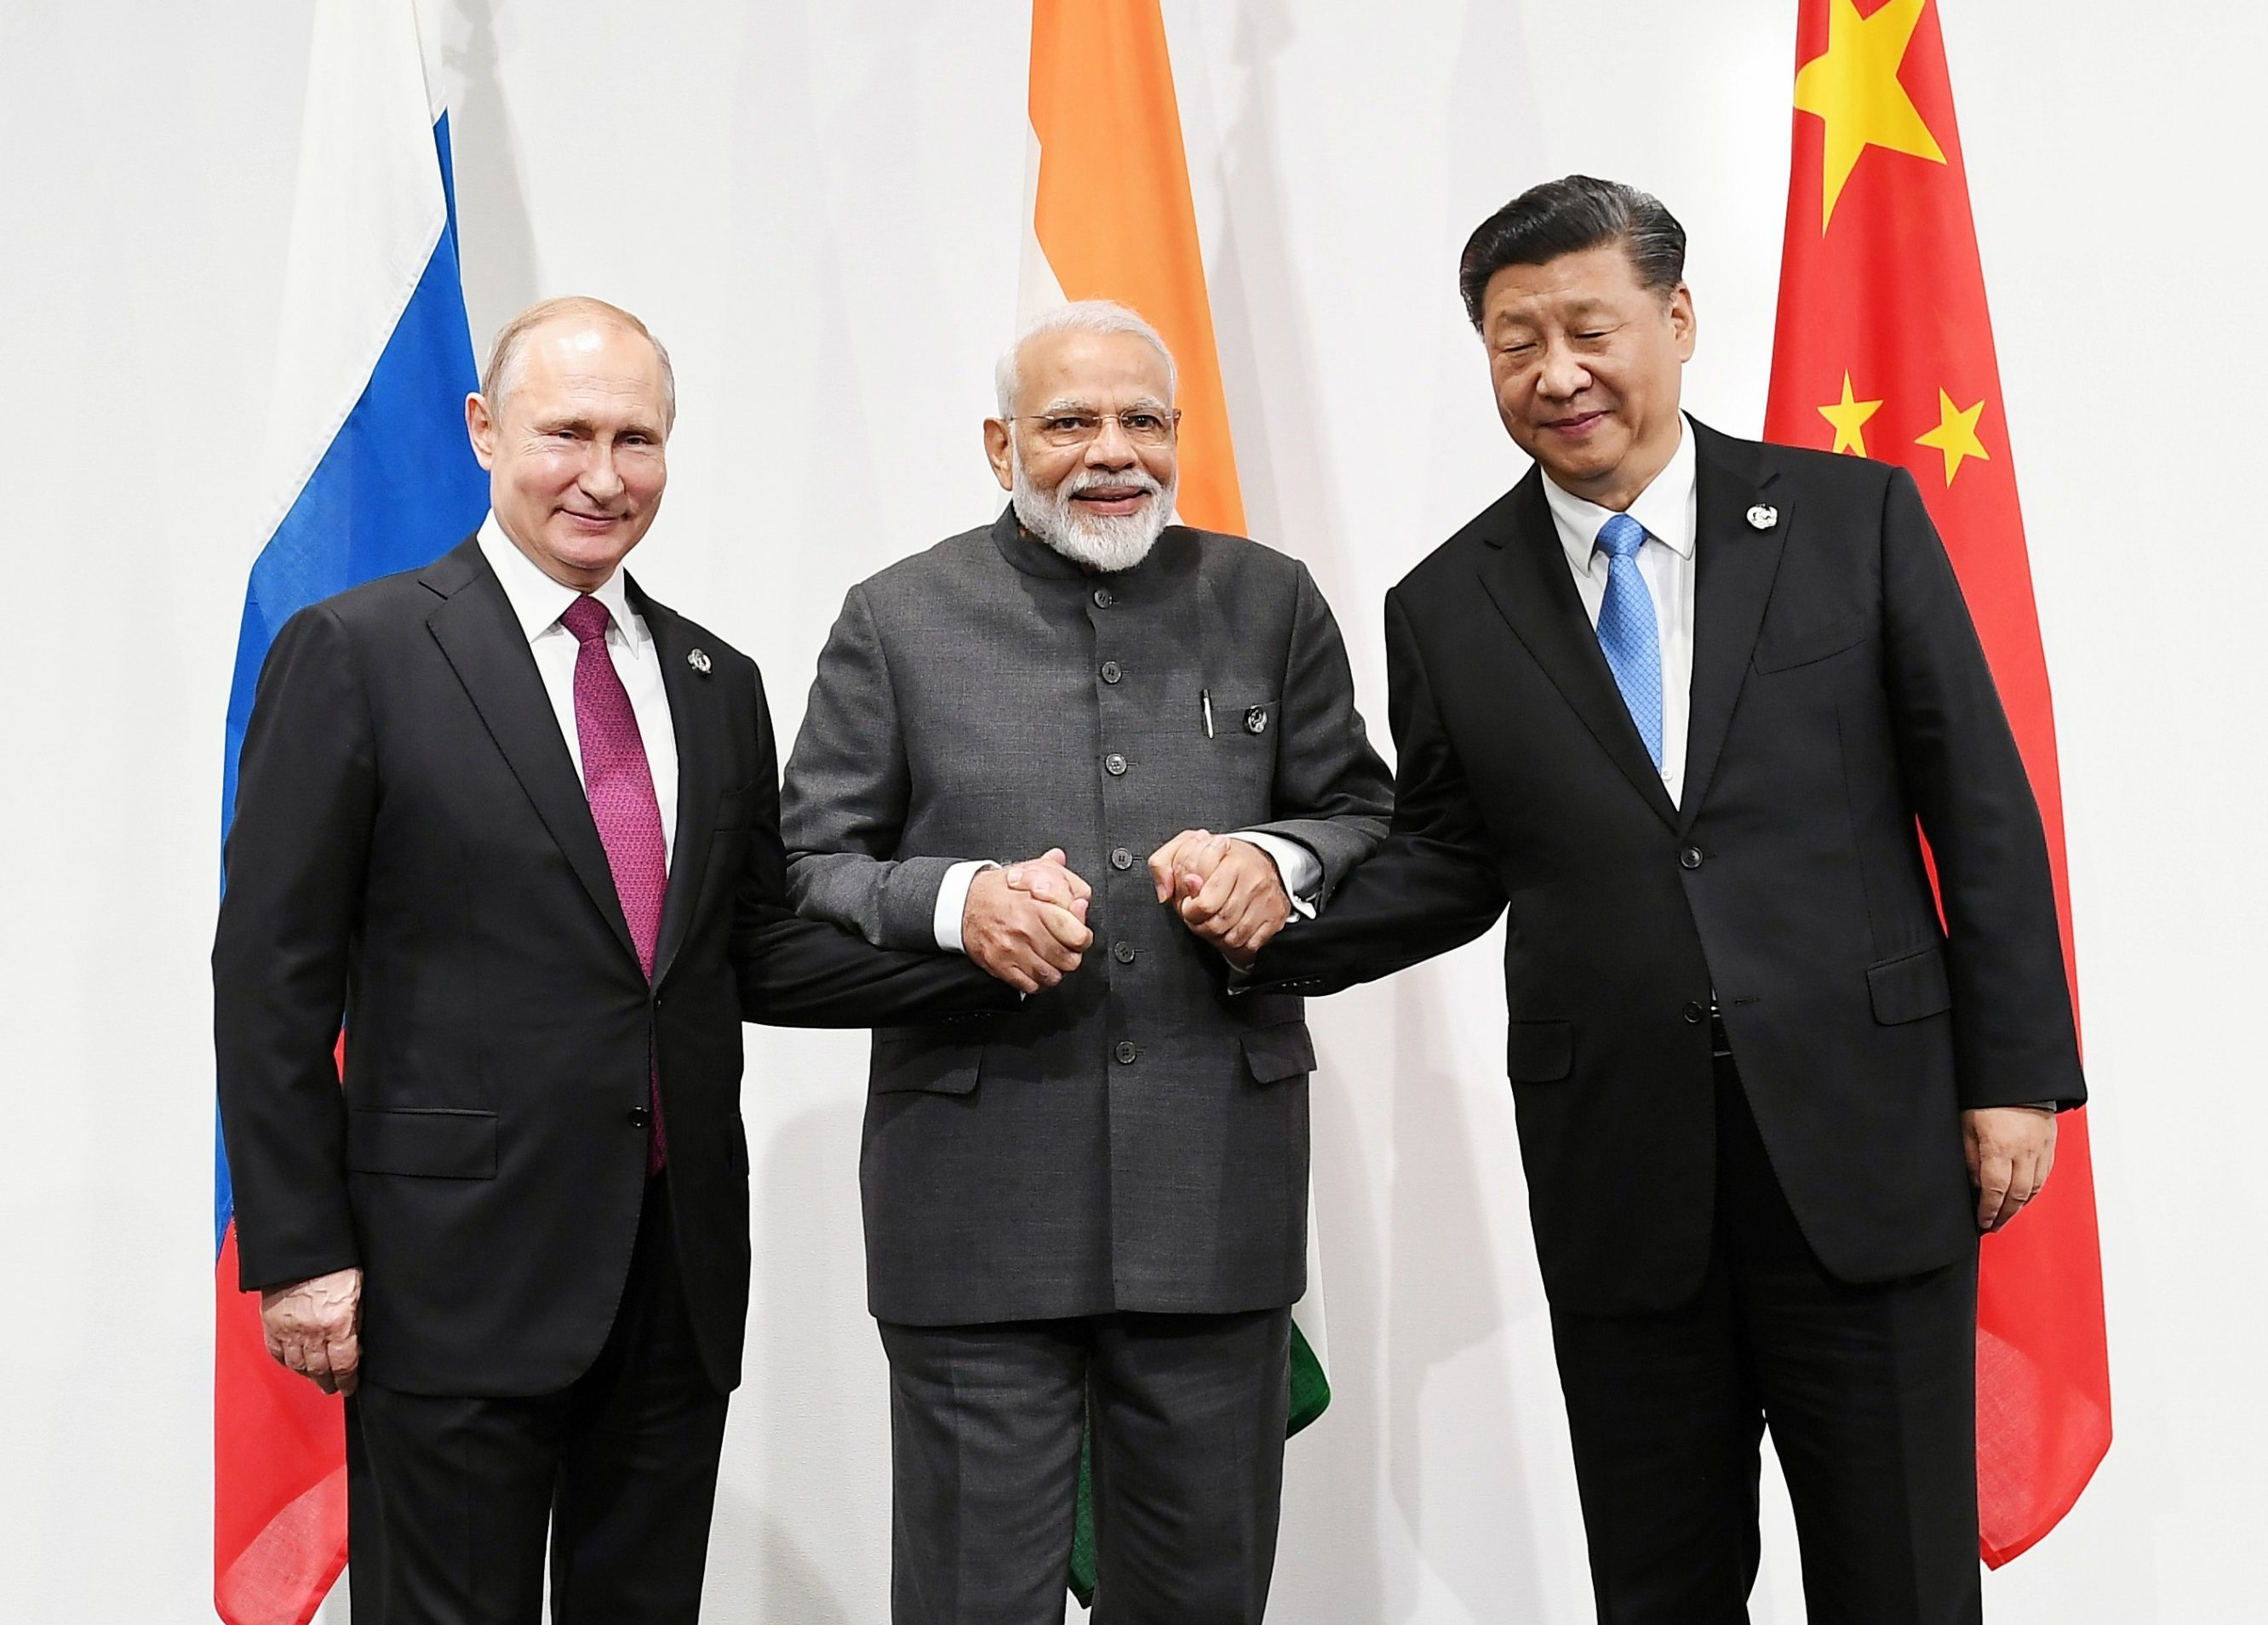 PM's opening remarks at the informal summit of 'Russia-India-China' (RIC) leaders on the margins of G-20 Summit 2019